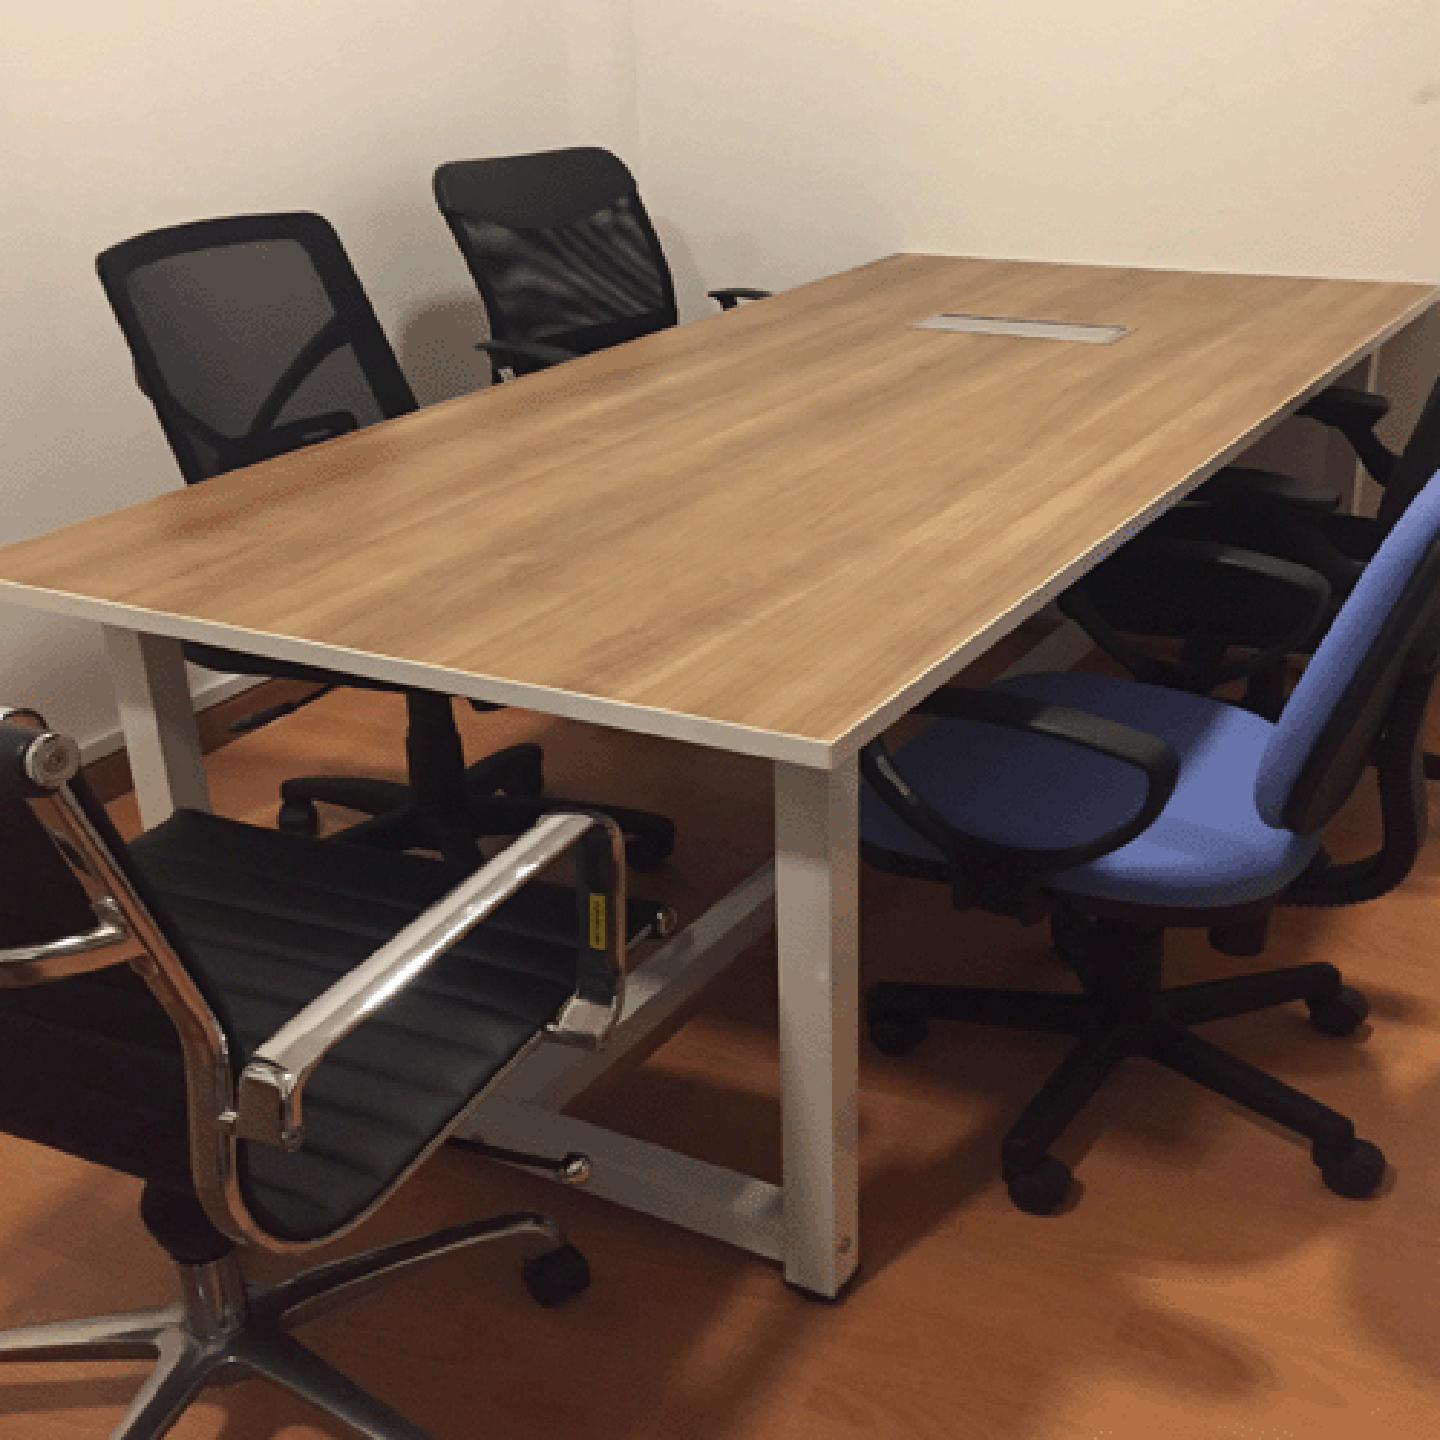 2.0m Conference Table